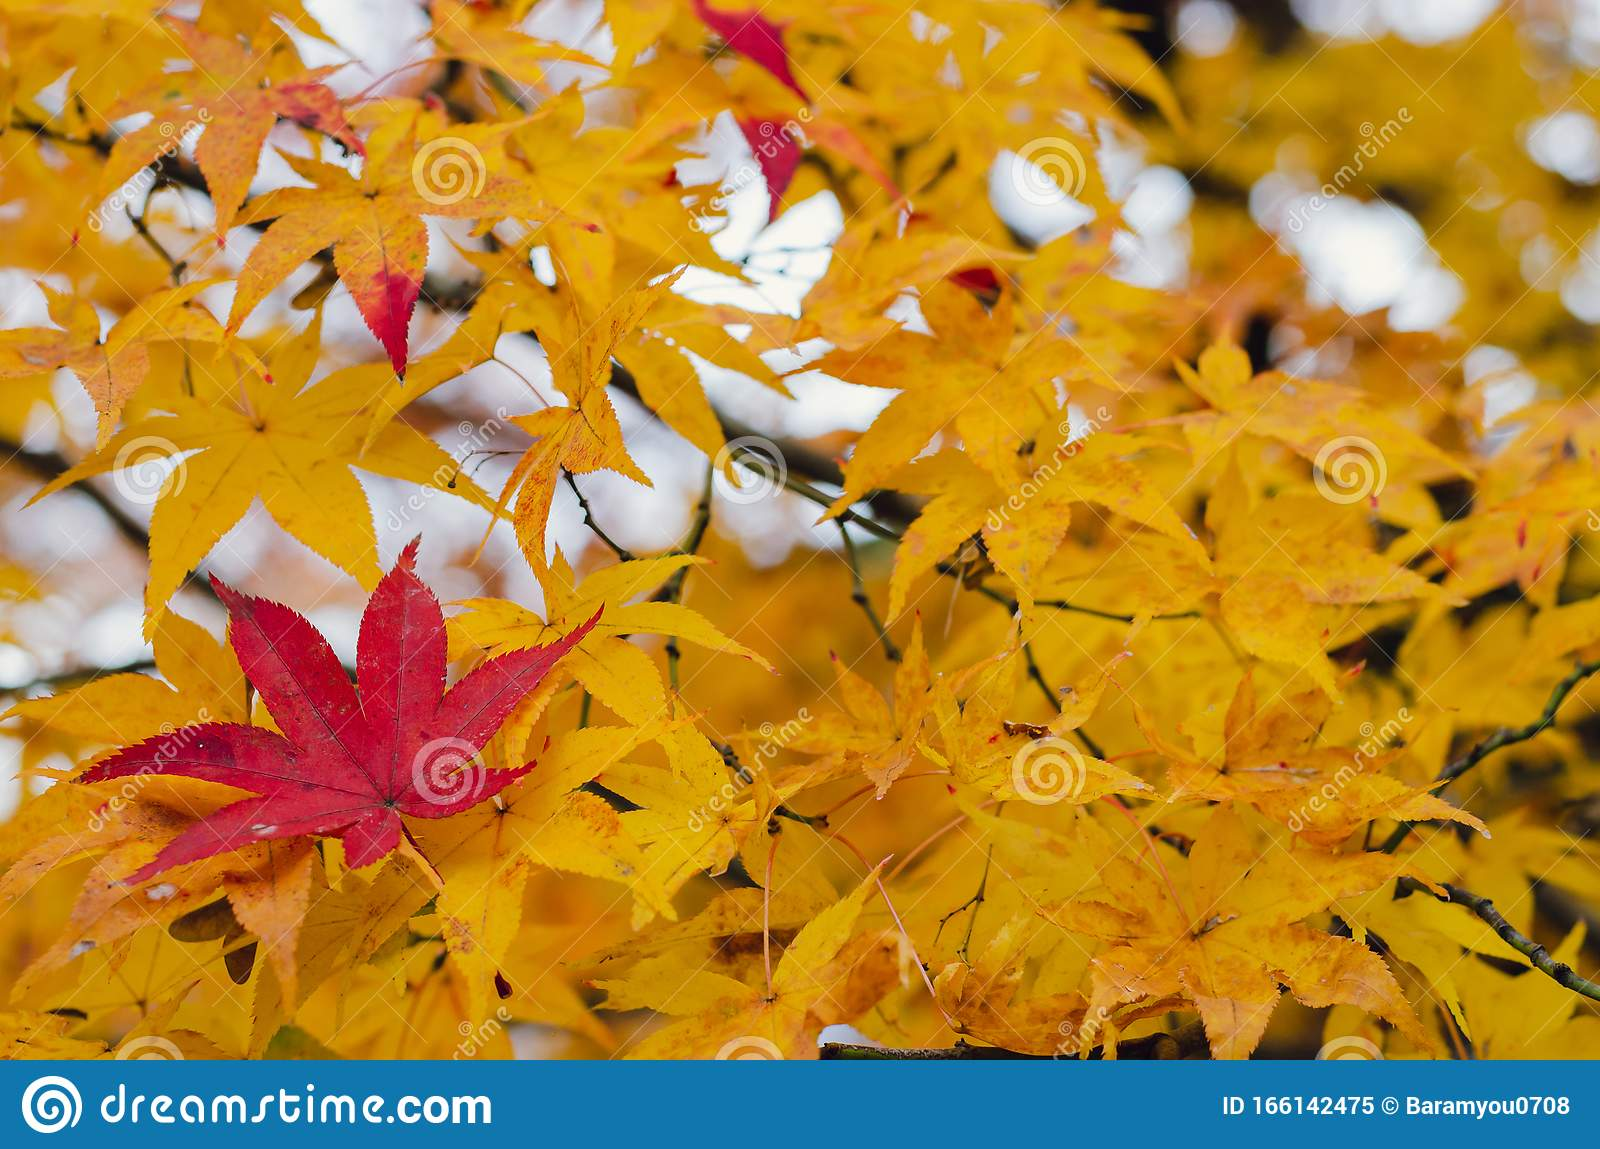 Red Maple Leaf On Yellow Maple Tree Stock Image